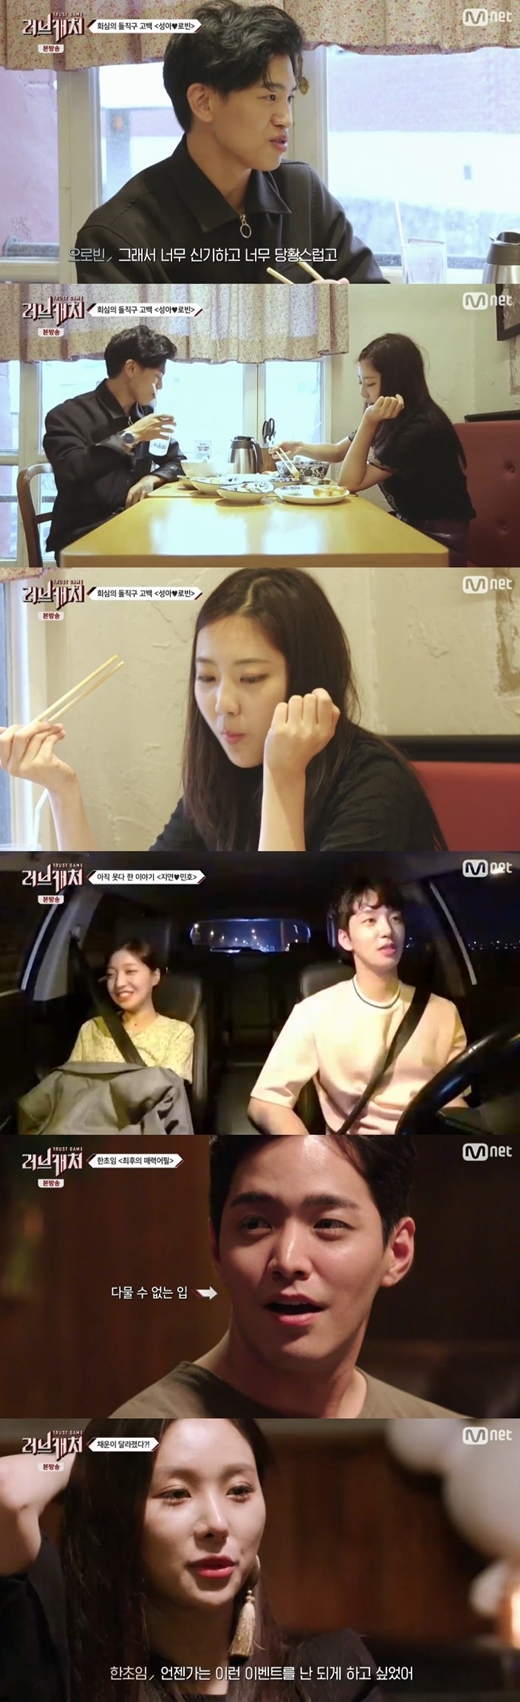 <p>On the 22nd night broadcasting of the cable channel Emnet Love catcher, a Date was held to select womens participants.</p><p>Ji Yeon Kim took a date with Lee Min-ho, Ah Robin was Gimsonaa, Fang Lan was Hong Chang, Han Choo is Ichoun and Date.</p><p>Especially Gimsonaa has confessed feelings towards Robin so far, Robin aggressively responded to the heart. Olobin showed affection for Fang Lang and said, I want to be with Date, It feels just right with a good reputation and I feel a favorable feeling when I see a lot of very pure cotton. .</p><p>Han Choyim also positively dashed in Ichaun. I called a dance crew and went on a sexy dance event.</p><p>Lee Min-ho was convinced that Ji Yeon Kim was Love catcher. Ji Yeon Kim Again I believe, I have never tried cheating, Lee Min-ho showed the trust that you are love.</p><p>One of the following participants changed my own Case of Identity. He soon gimson. Changing the A Case of Identity after Orobin and Date, the concern became big for his real A Case of Identity.</p>